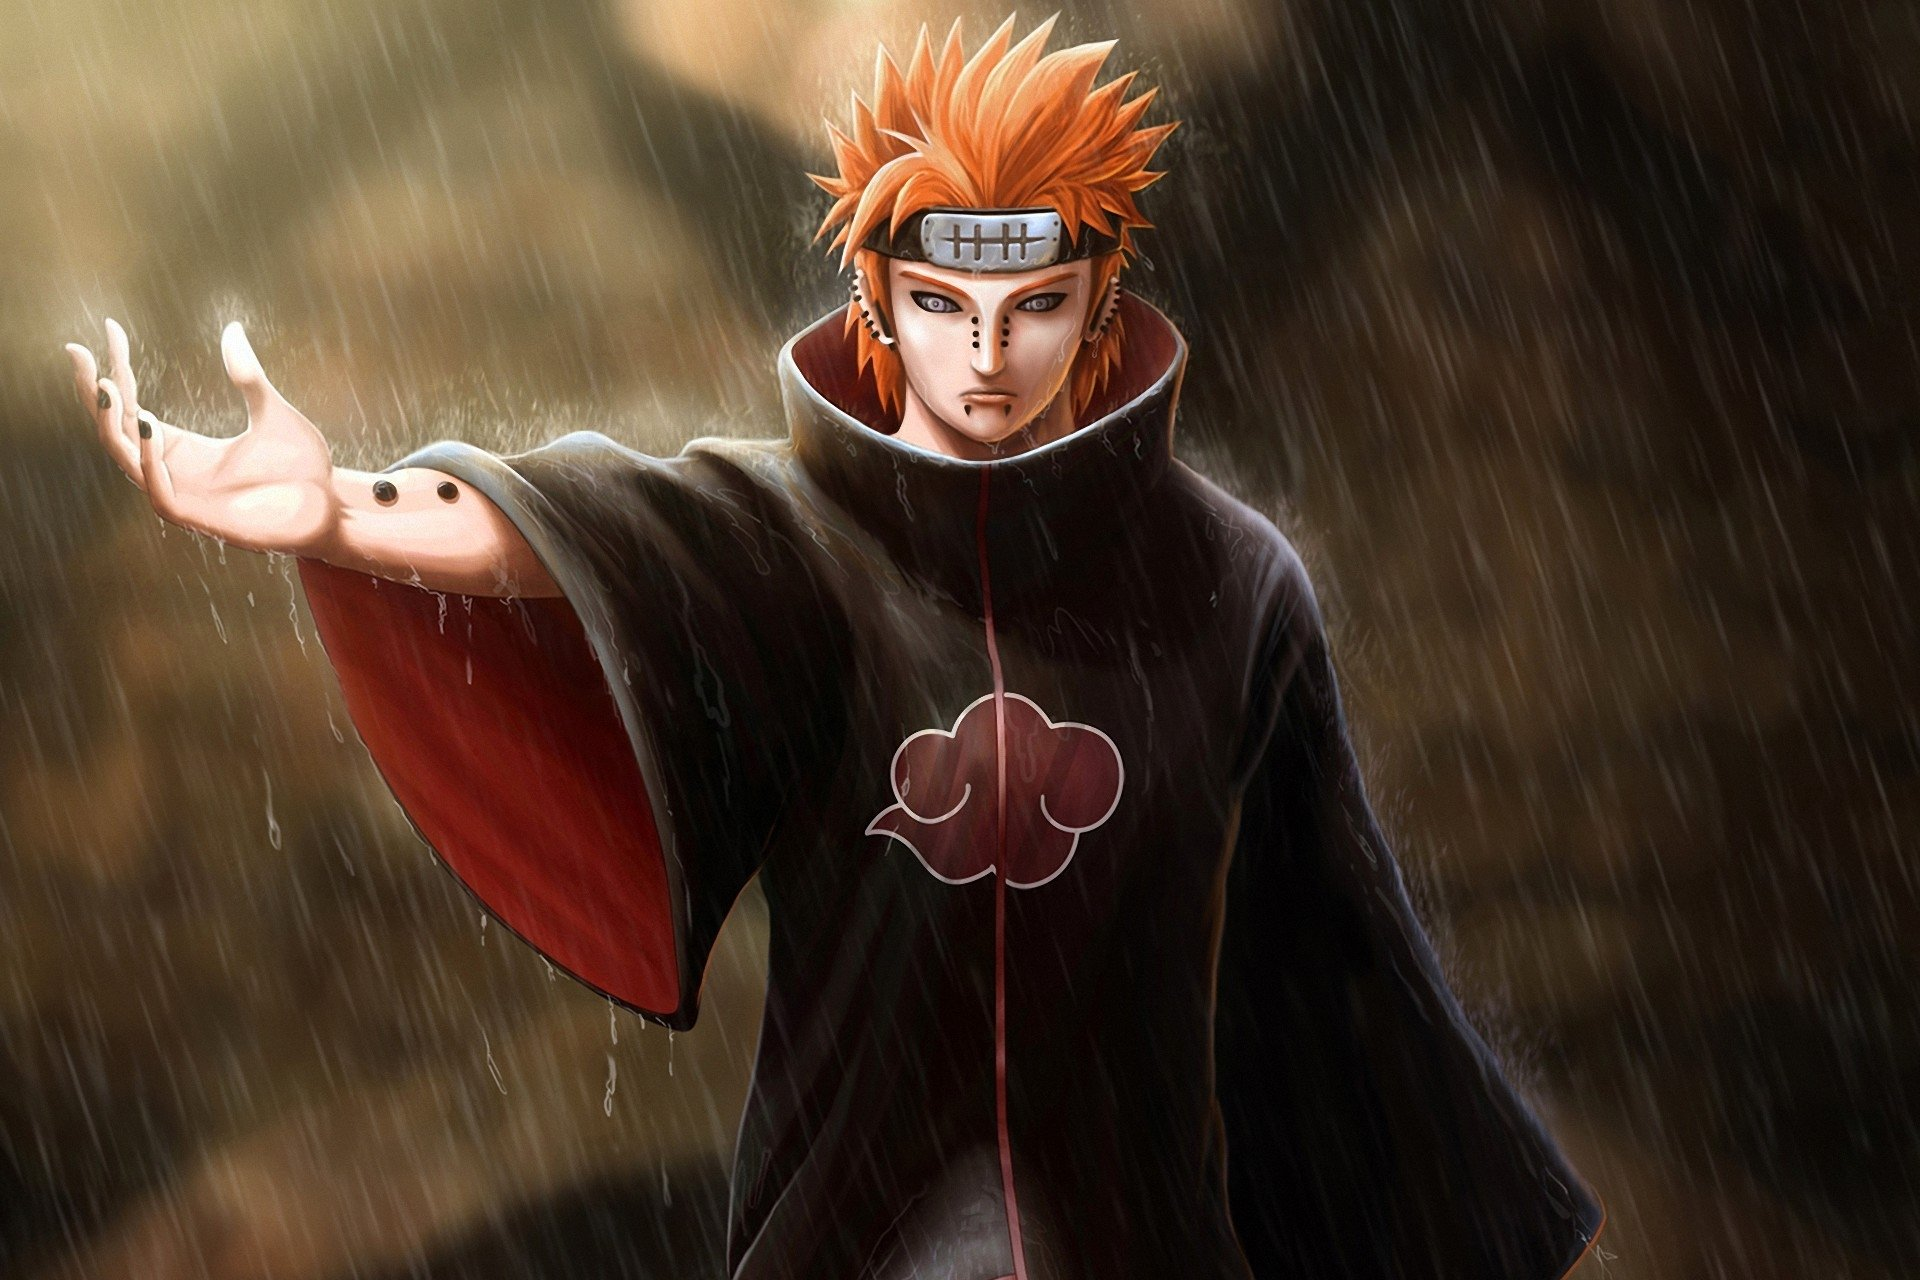 42 Akatsuki (Naruto) HD Wallpapers | Backgrounds - Wallpaper Abyss